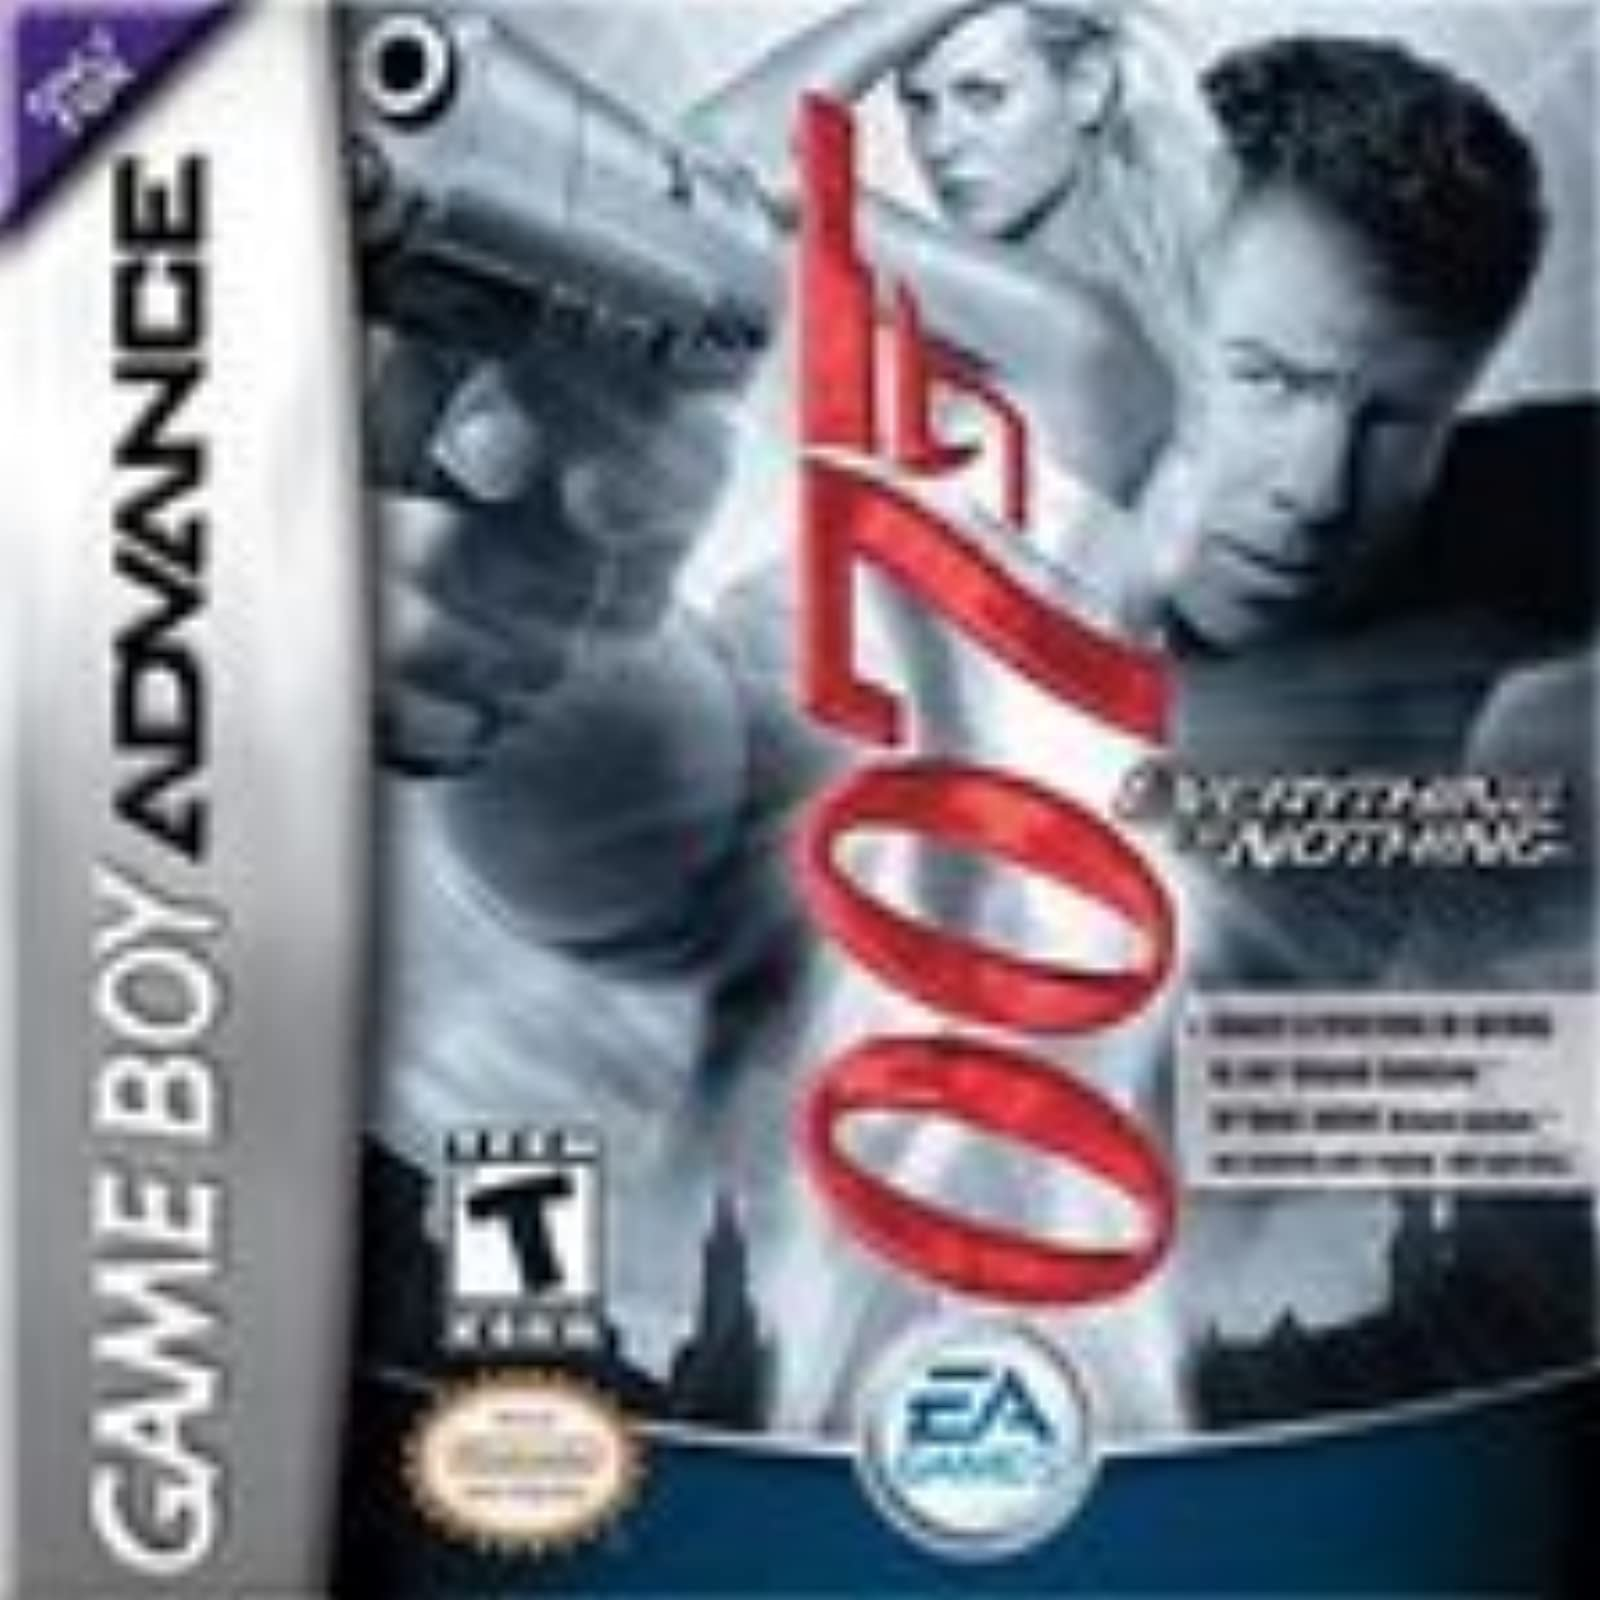 007 Everything Or Nothing And World Poker Tour Game Boy Advance 2 Game Gift Set